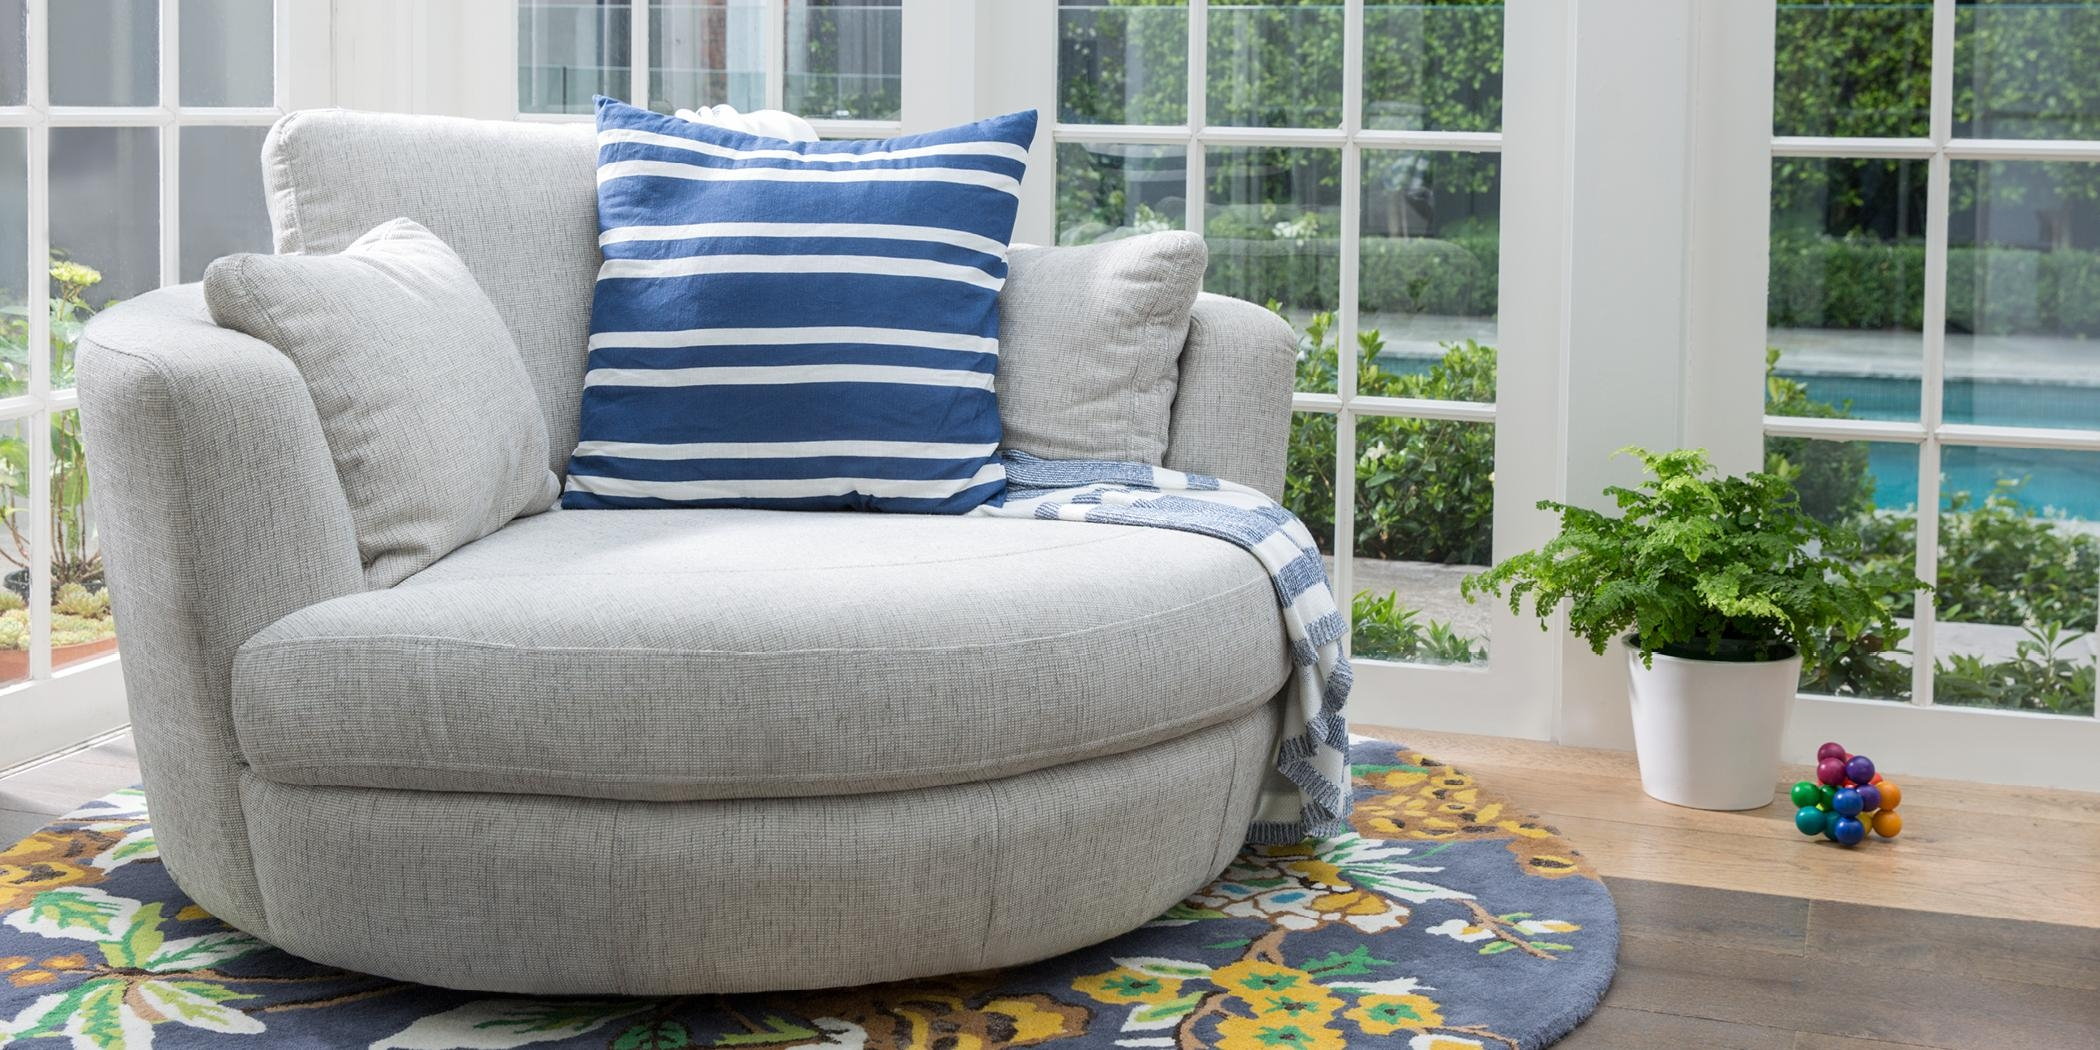 Snuggle Chair Leather, Fabric, Occasional Chairs Plush Furniture With Regard To Circular Sofa Chairs (View 15 of 20)